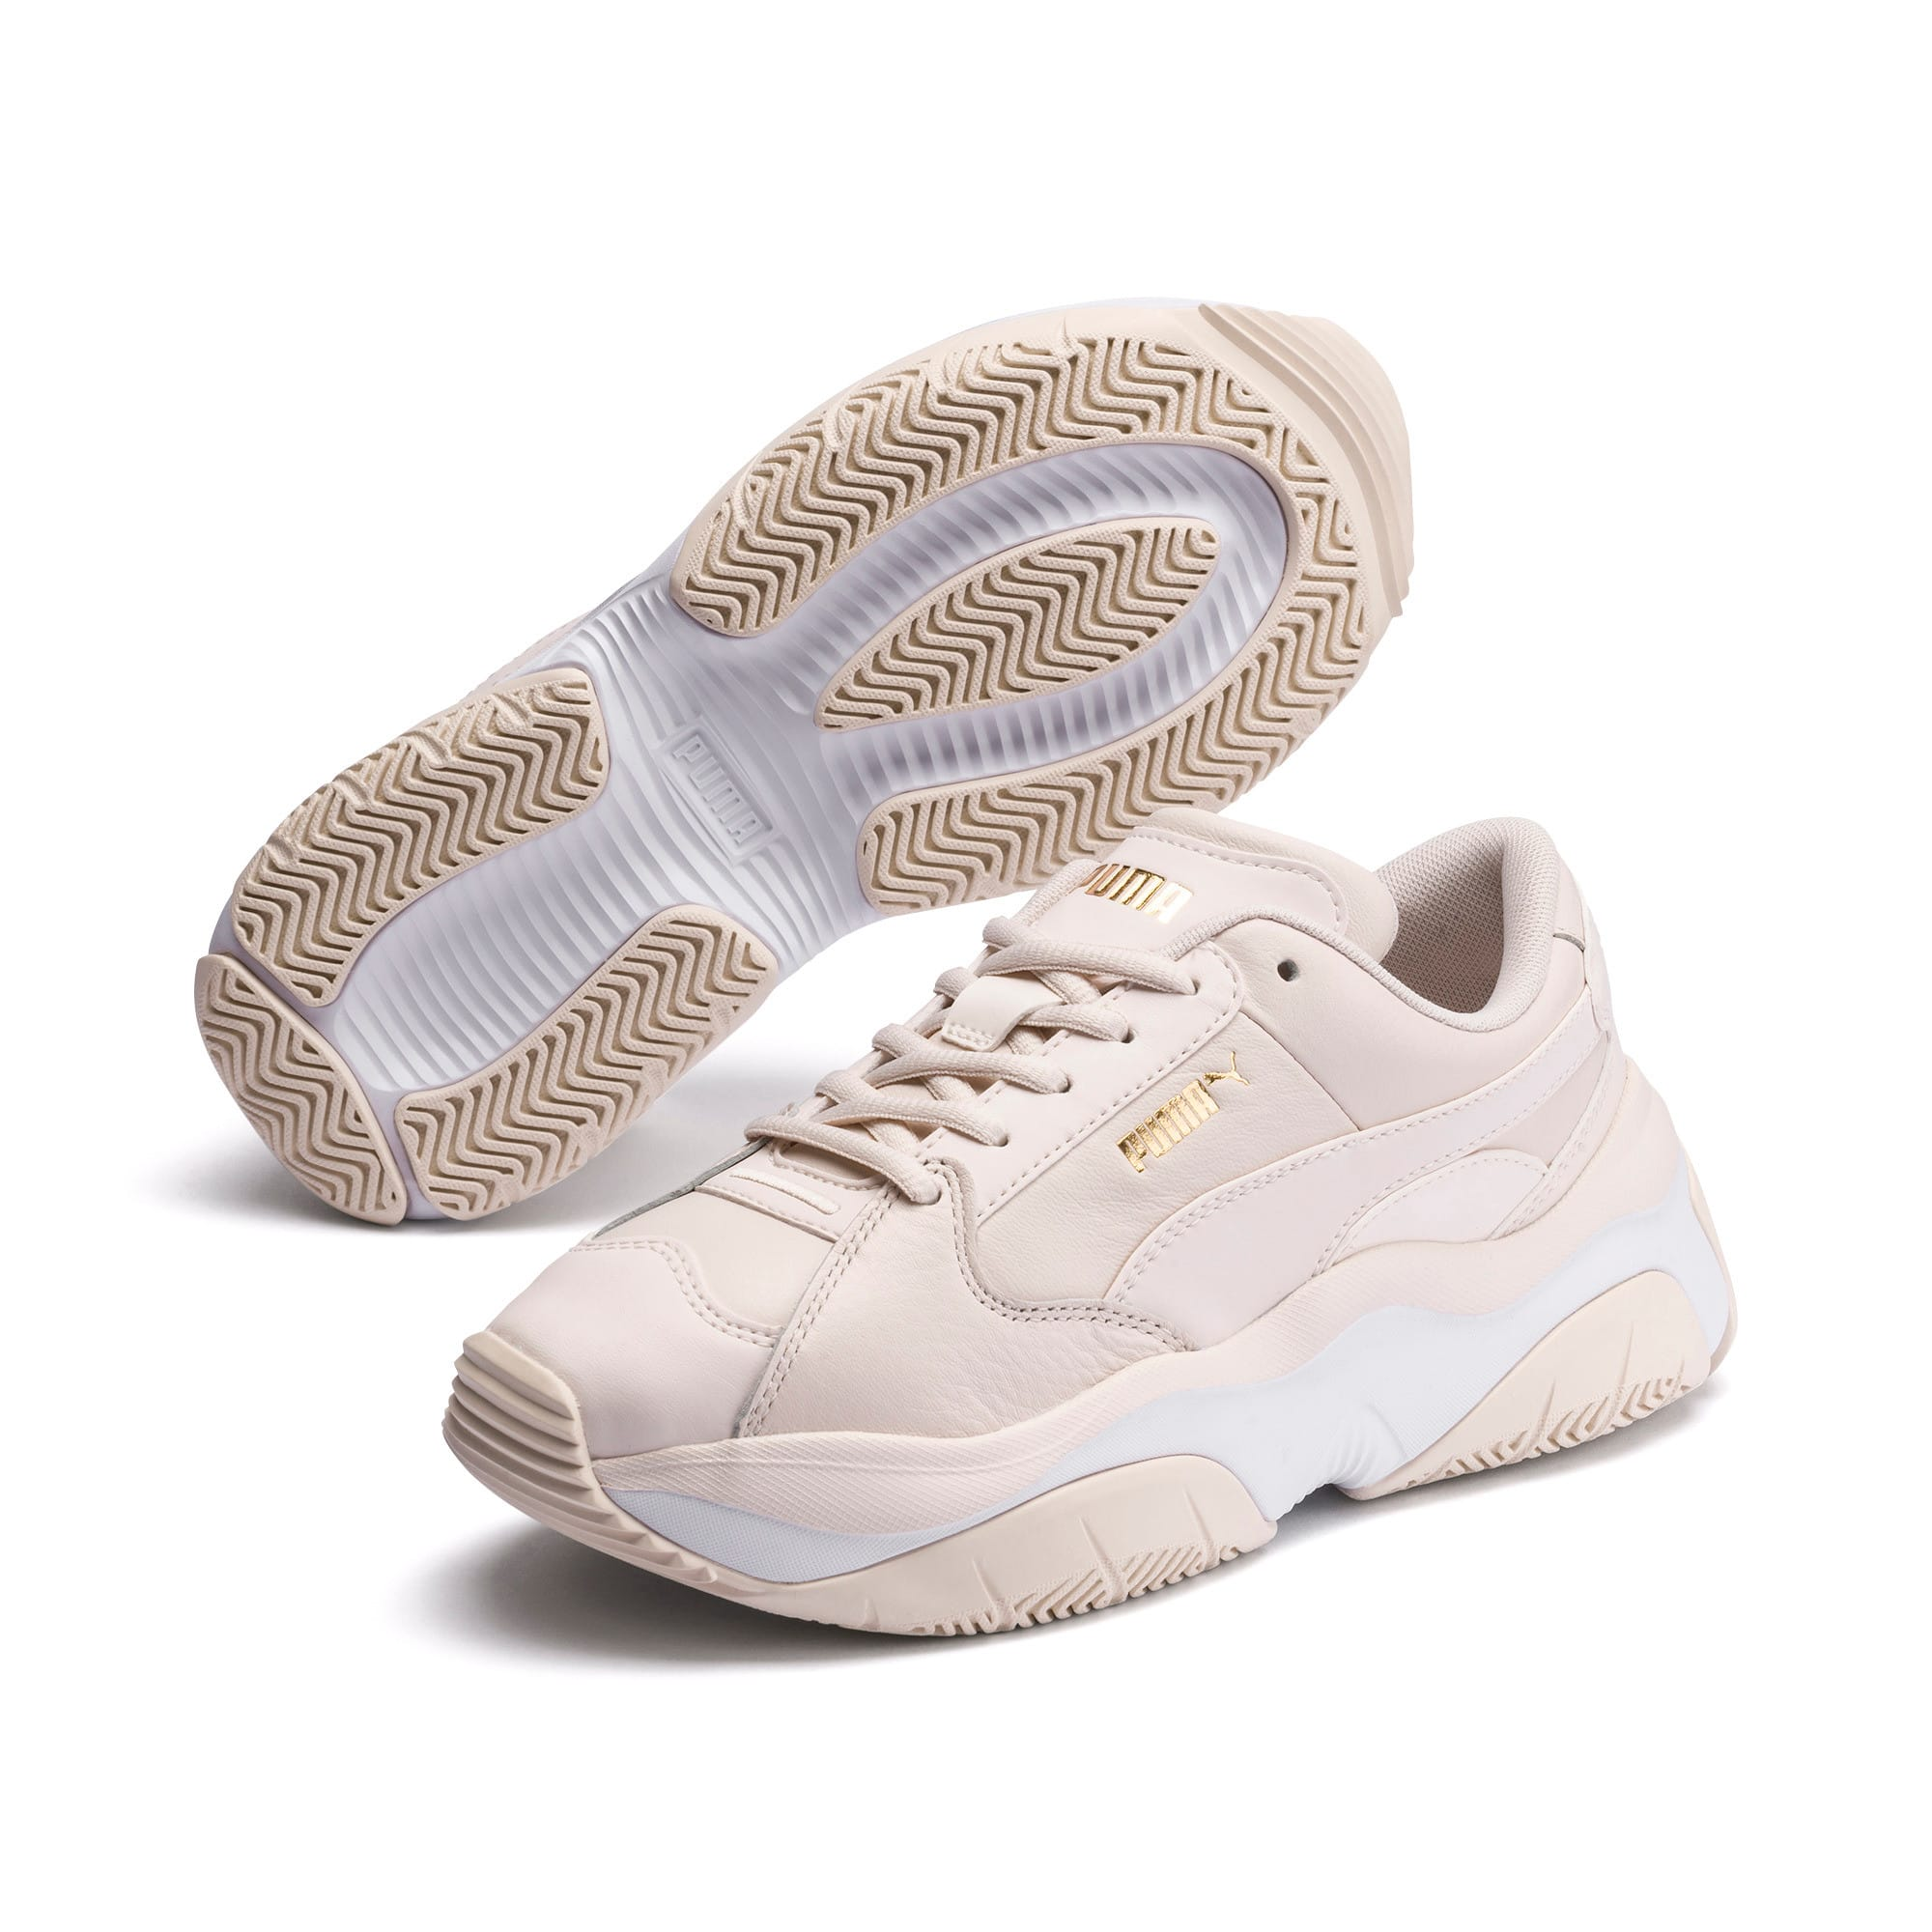 Thumbnail 2 of STORM.Y Leather Women's Trainers, Pastel Parchment, medium